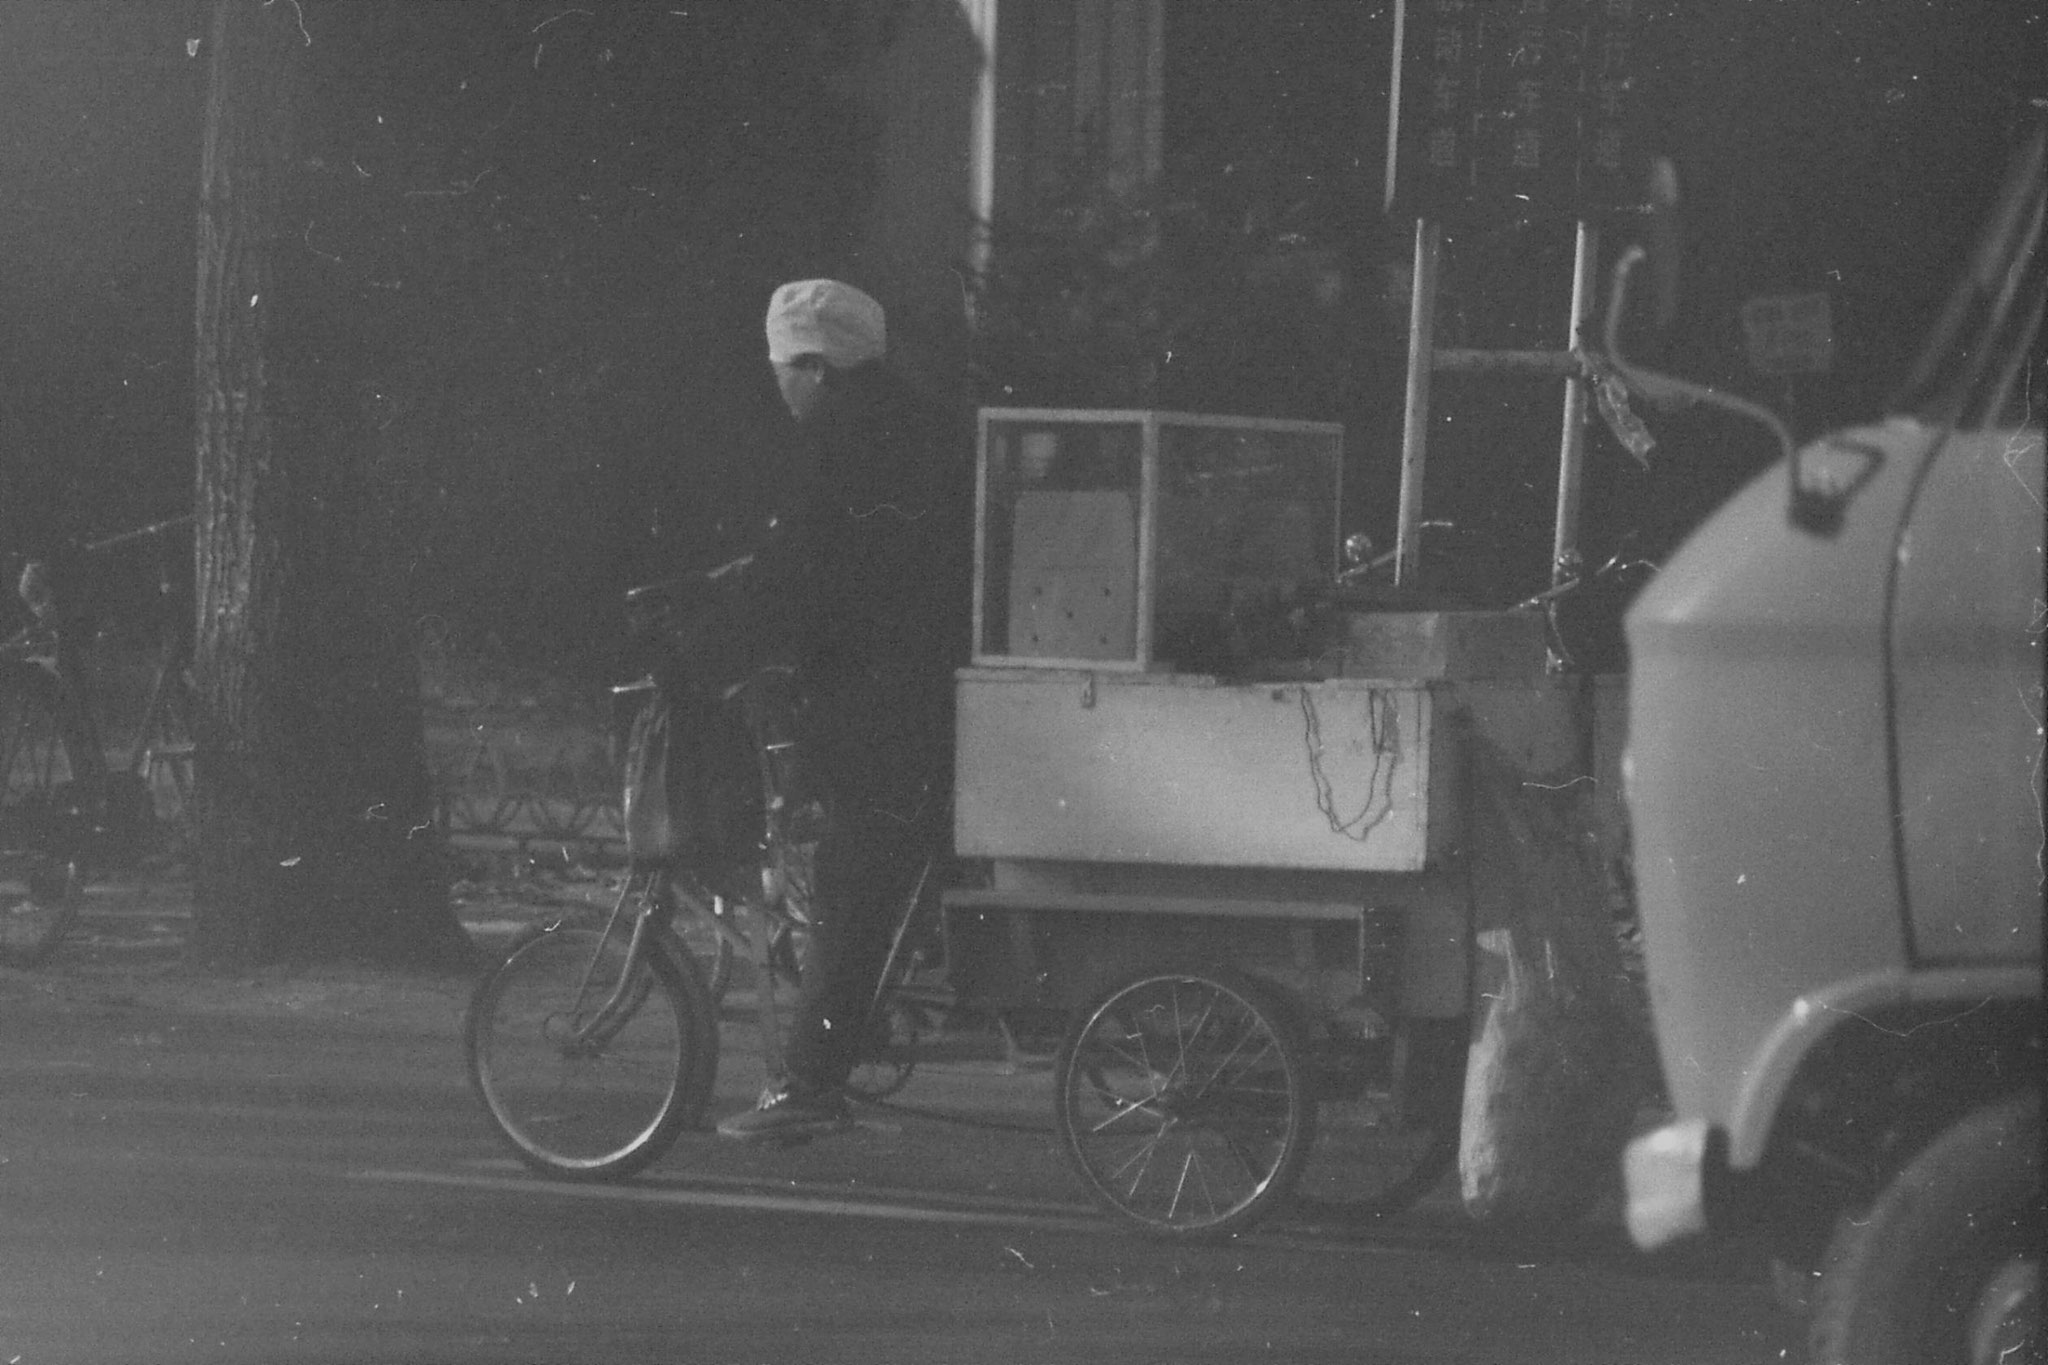 23/11/1988: 6: street scenes outside Friendship Hotel